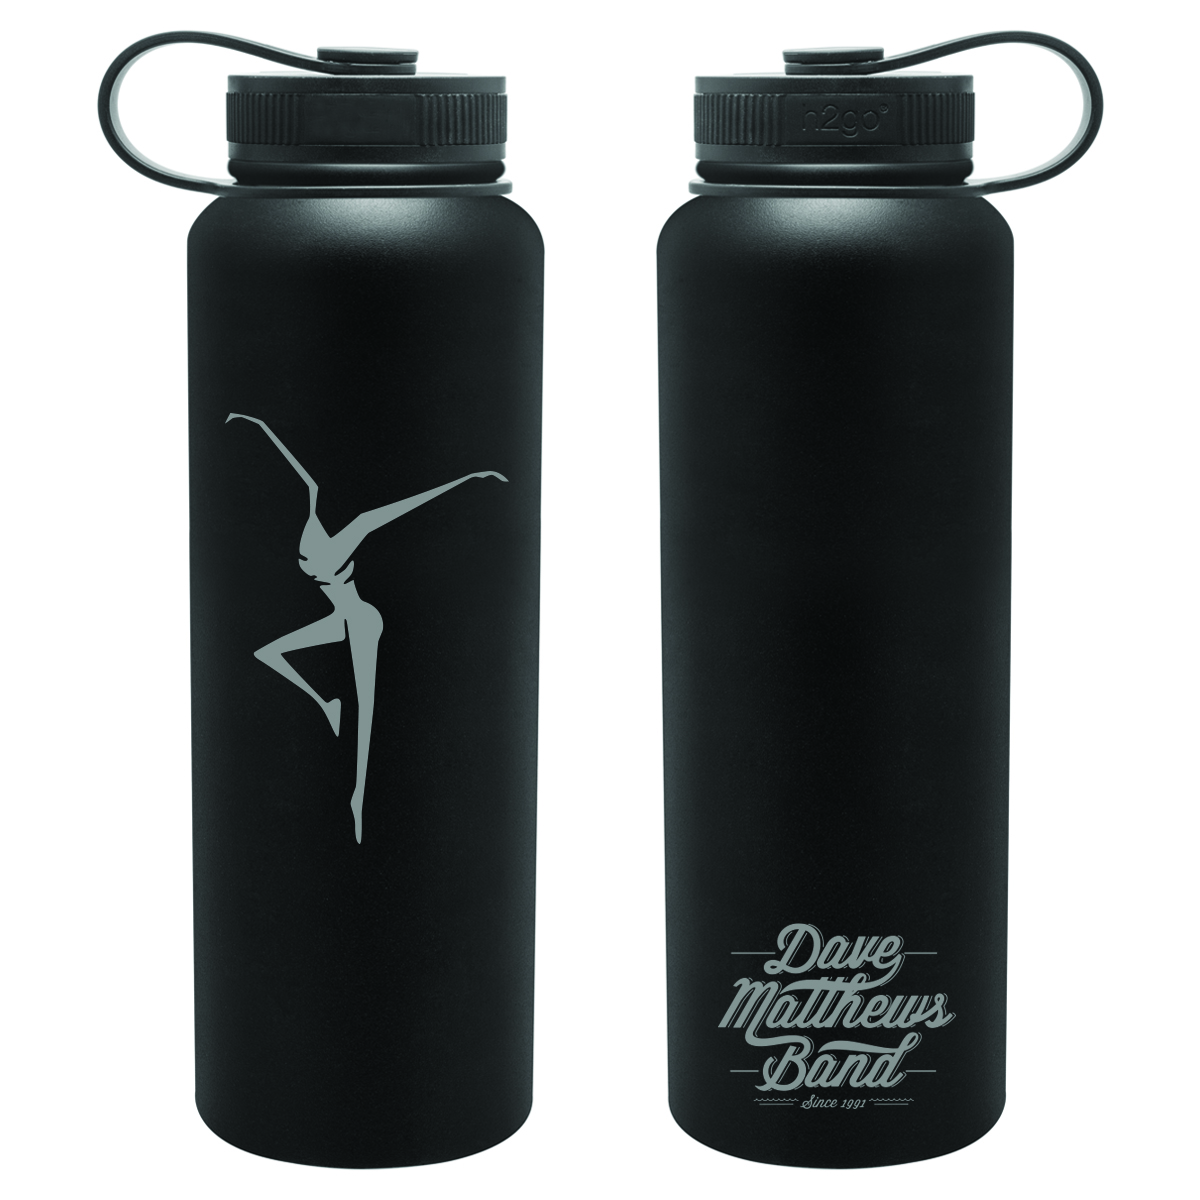 40oz Double Wall Thermal Bottle